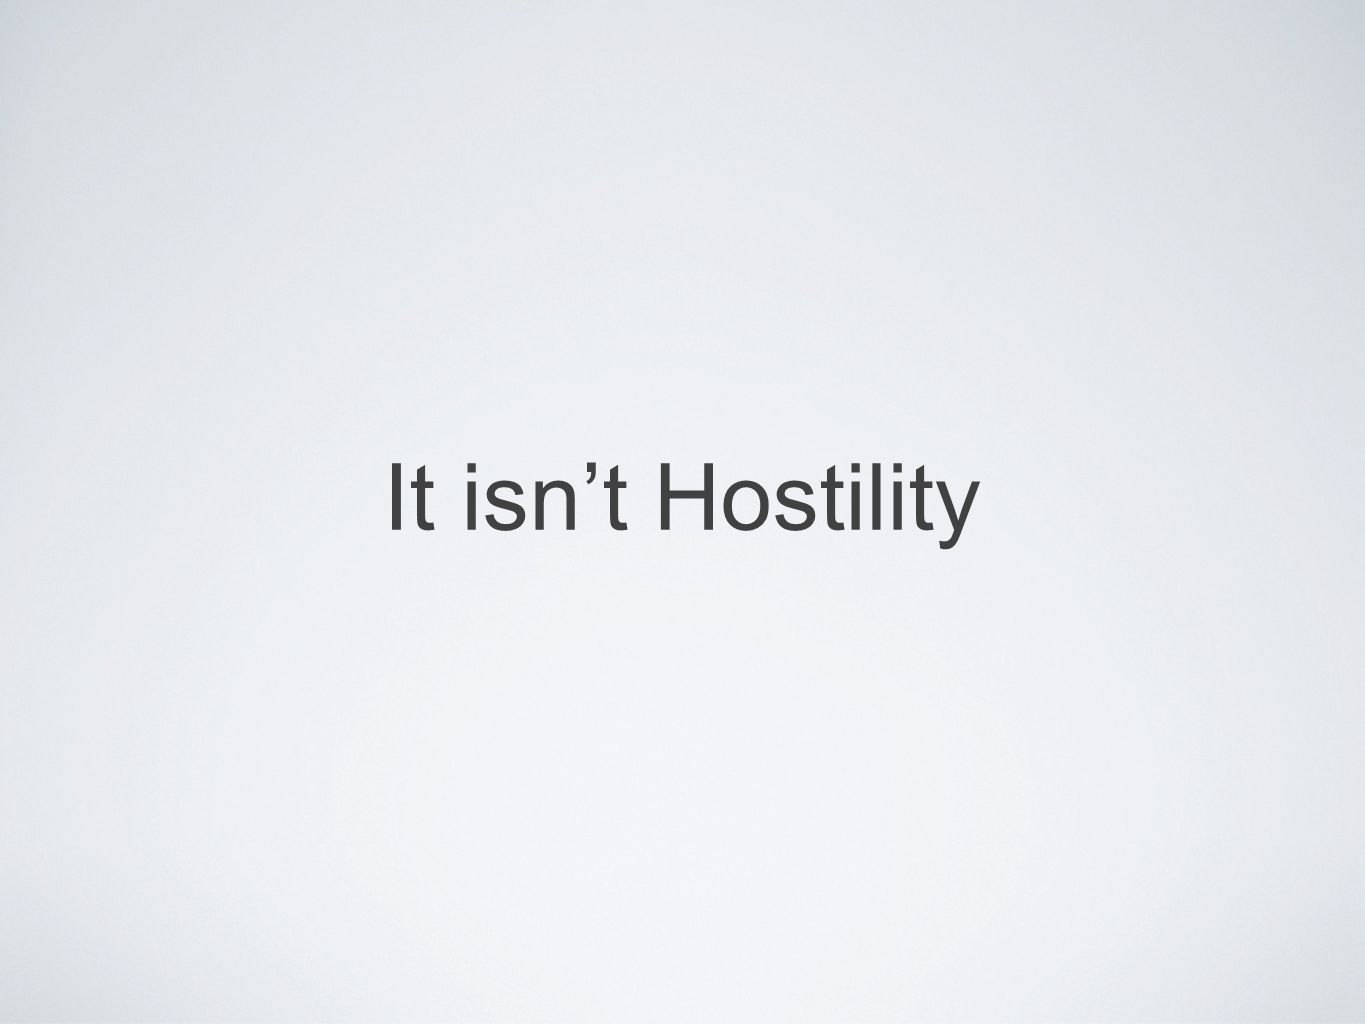 It isnt Hostility